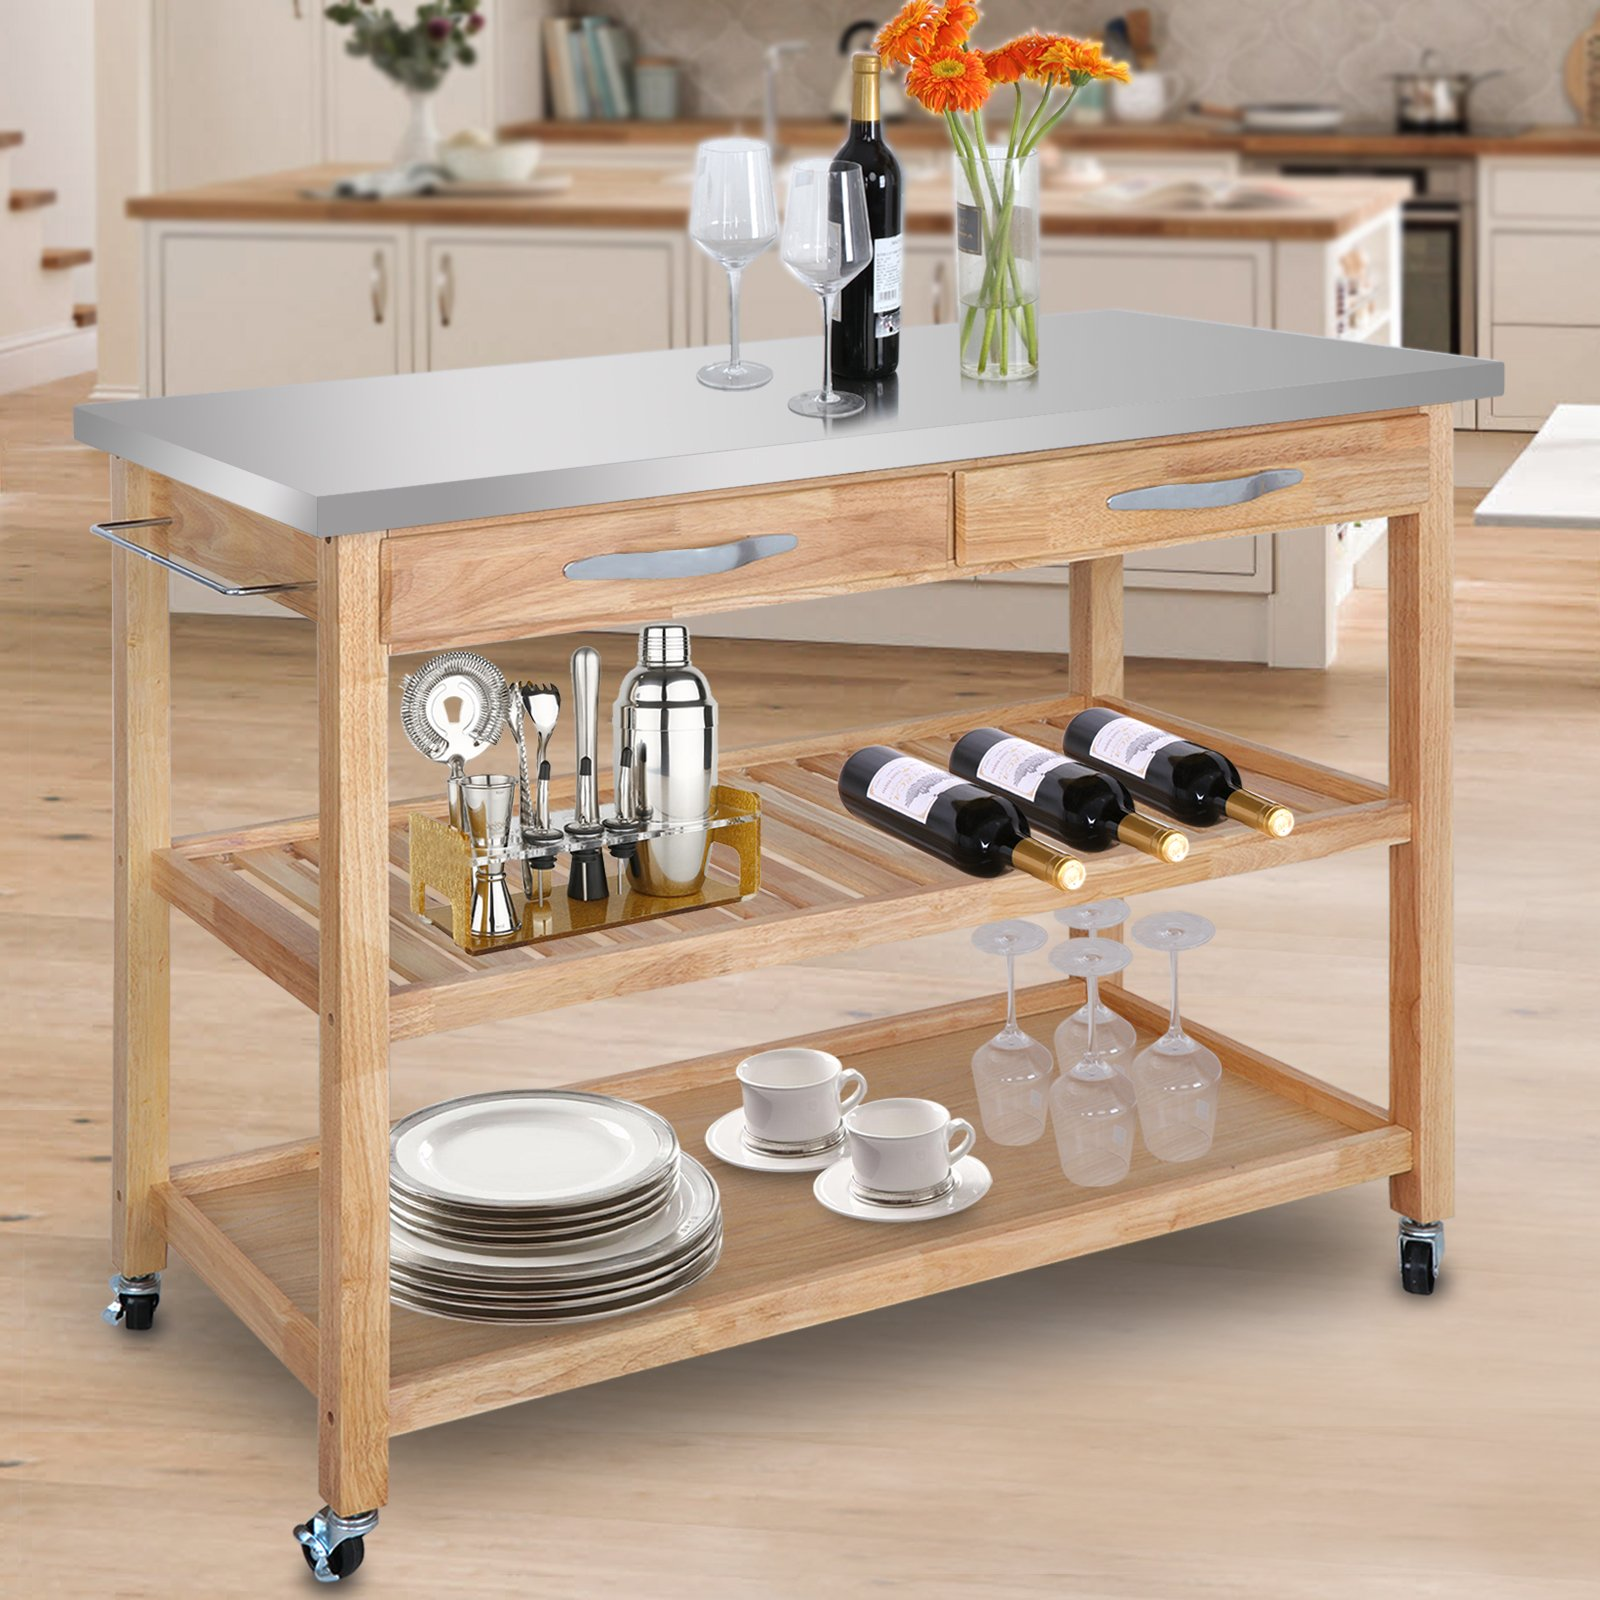 SUPER DEAL Zenchef Rolling Kitchen Island Utility Kitchen Serving Cart w/Stainless Steel Countertop, Spacious Drawers and Lockable Wheels, Natural (Upgraded Stainless Steel)